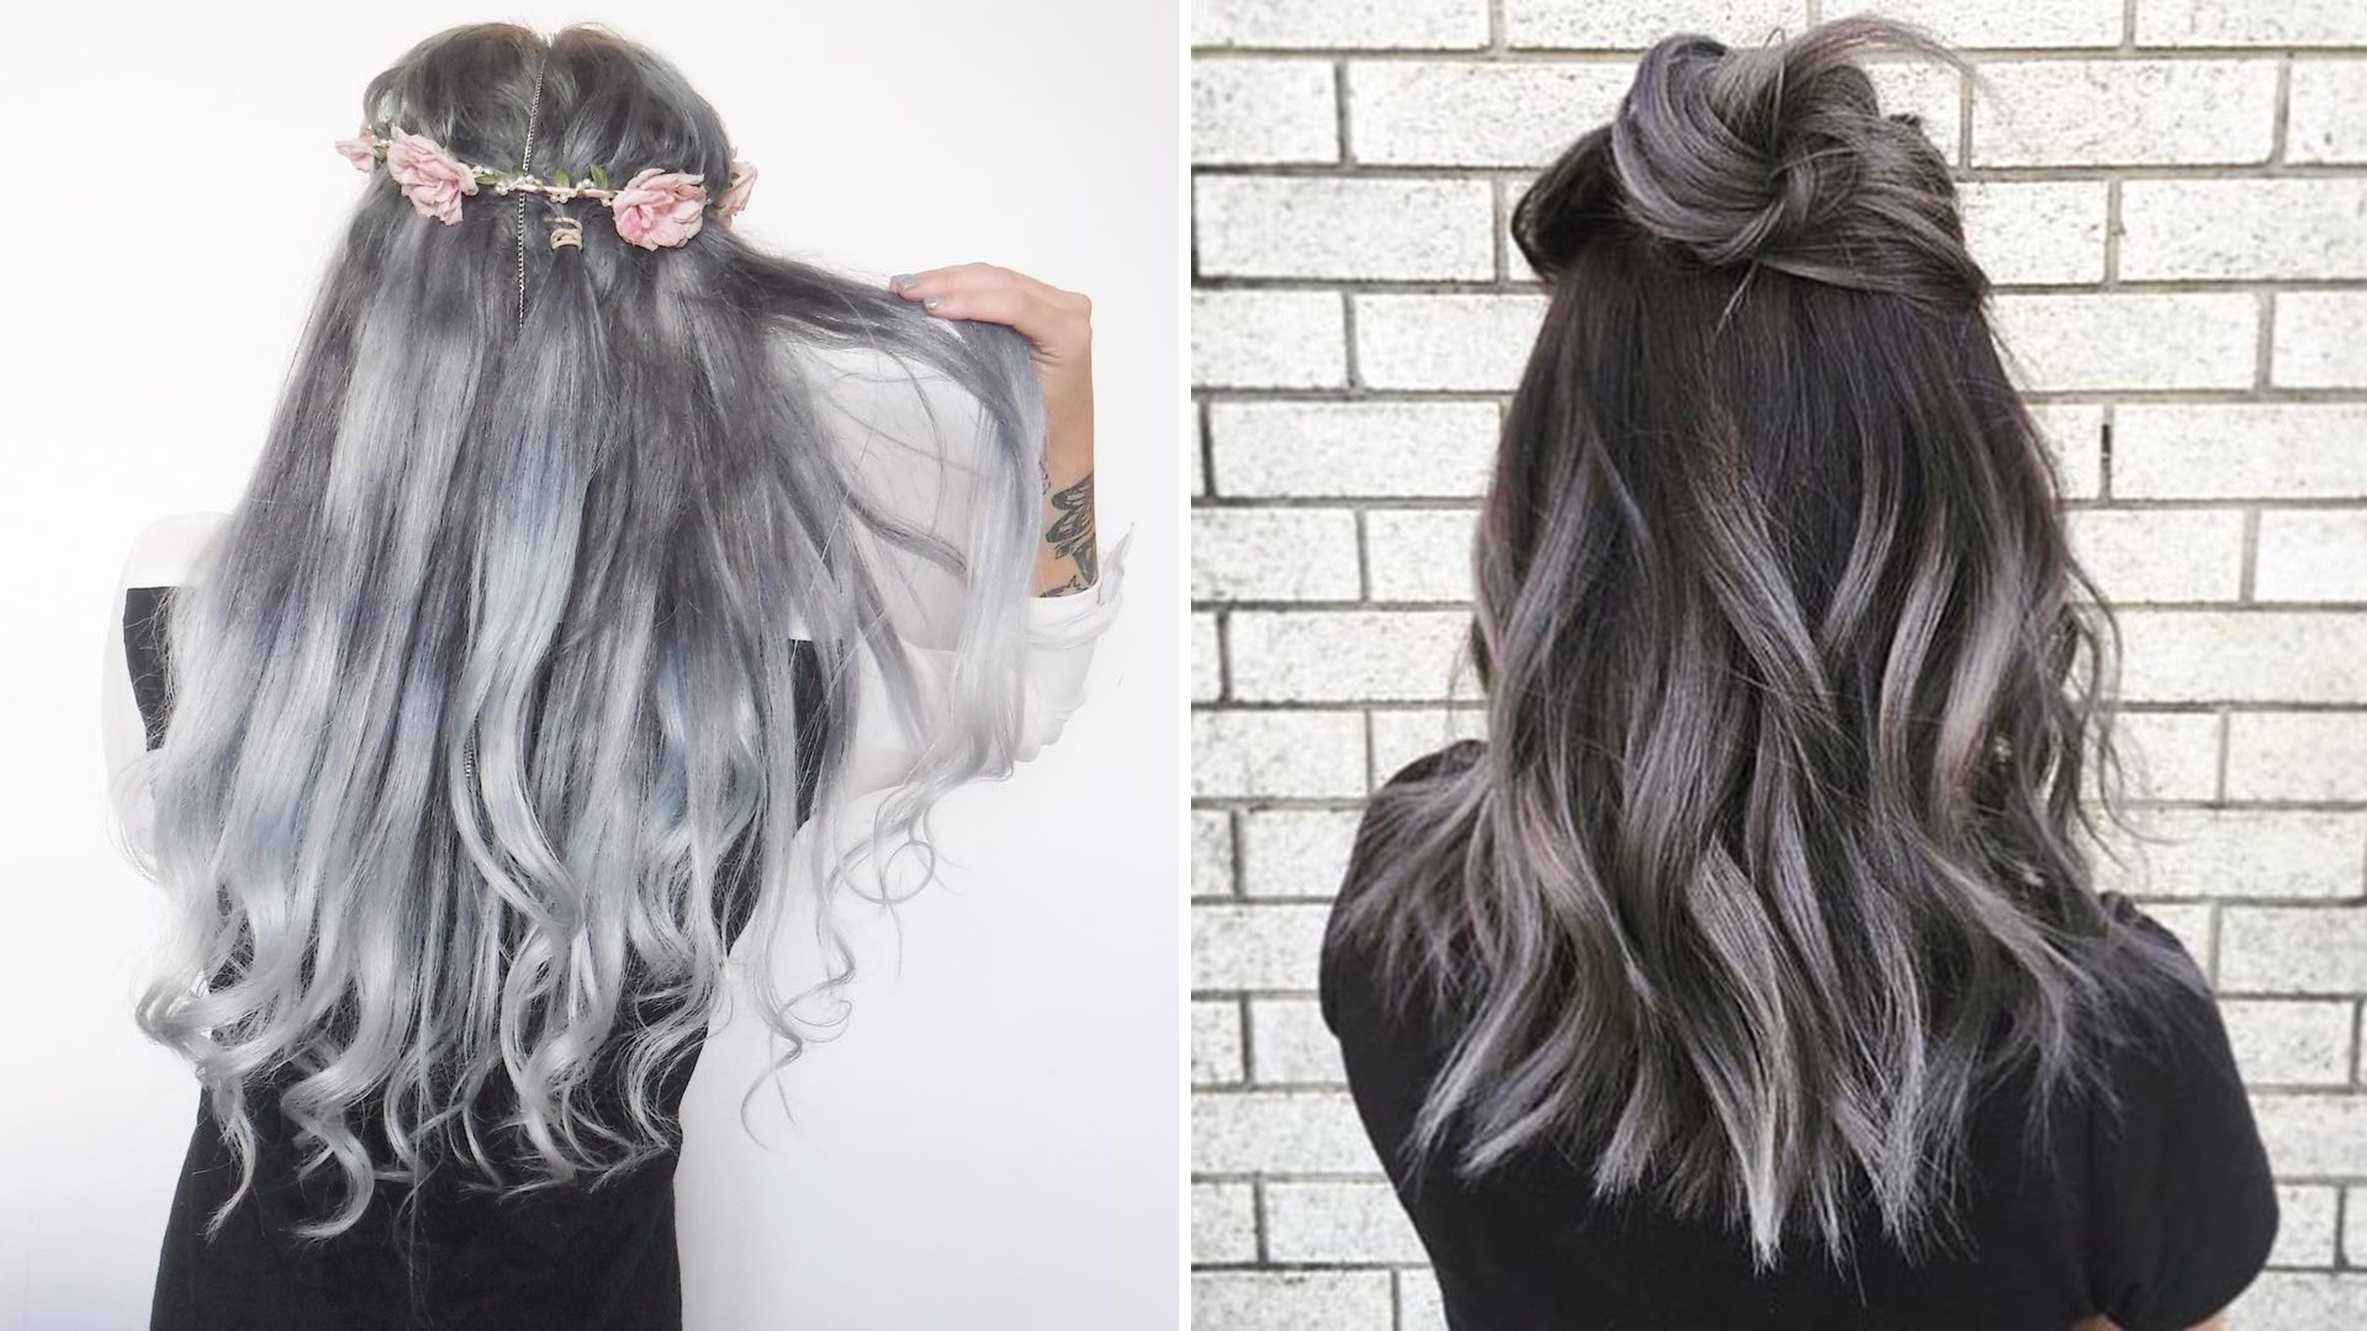 Allure Regarding Most Up To Date Reverse Gray Ombre Pixie Hairstyles For Short Hair (View 8 of 20)